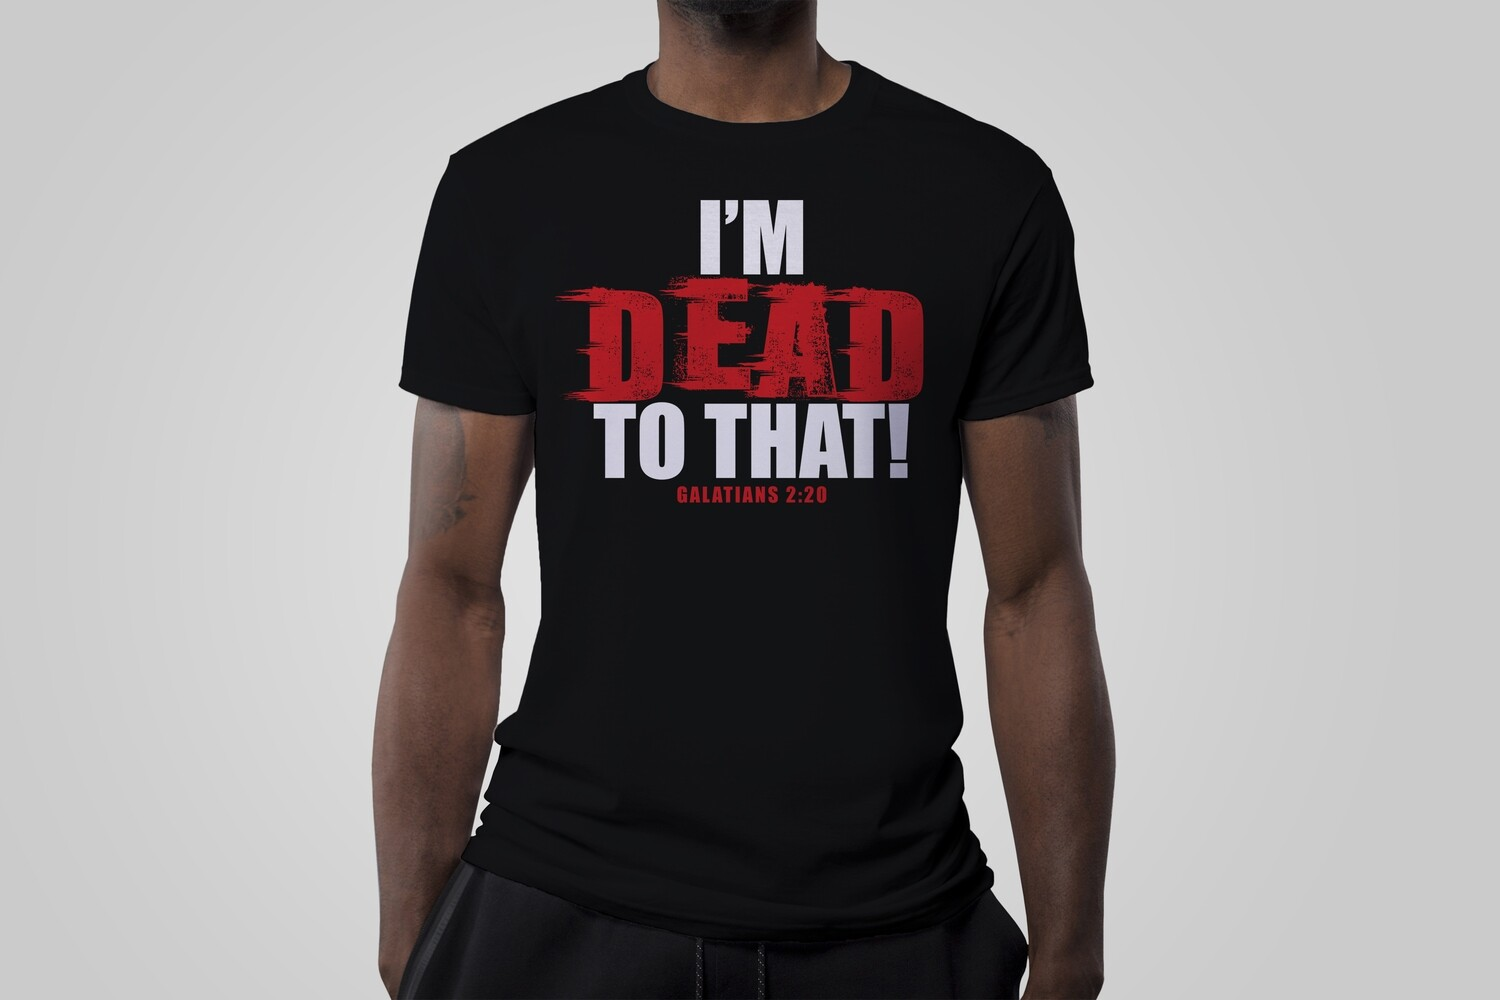 I'm Dead to That! Shirt